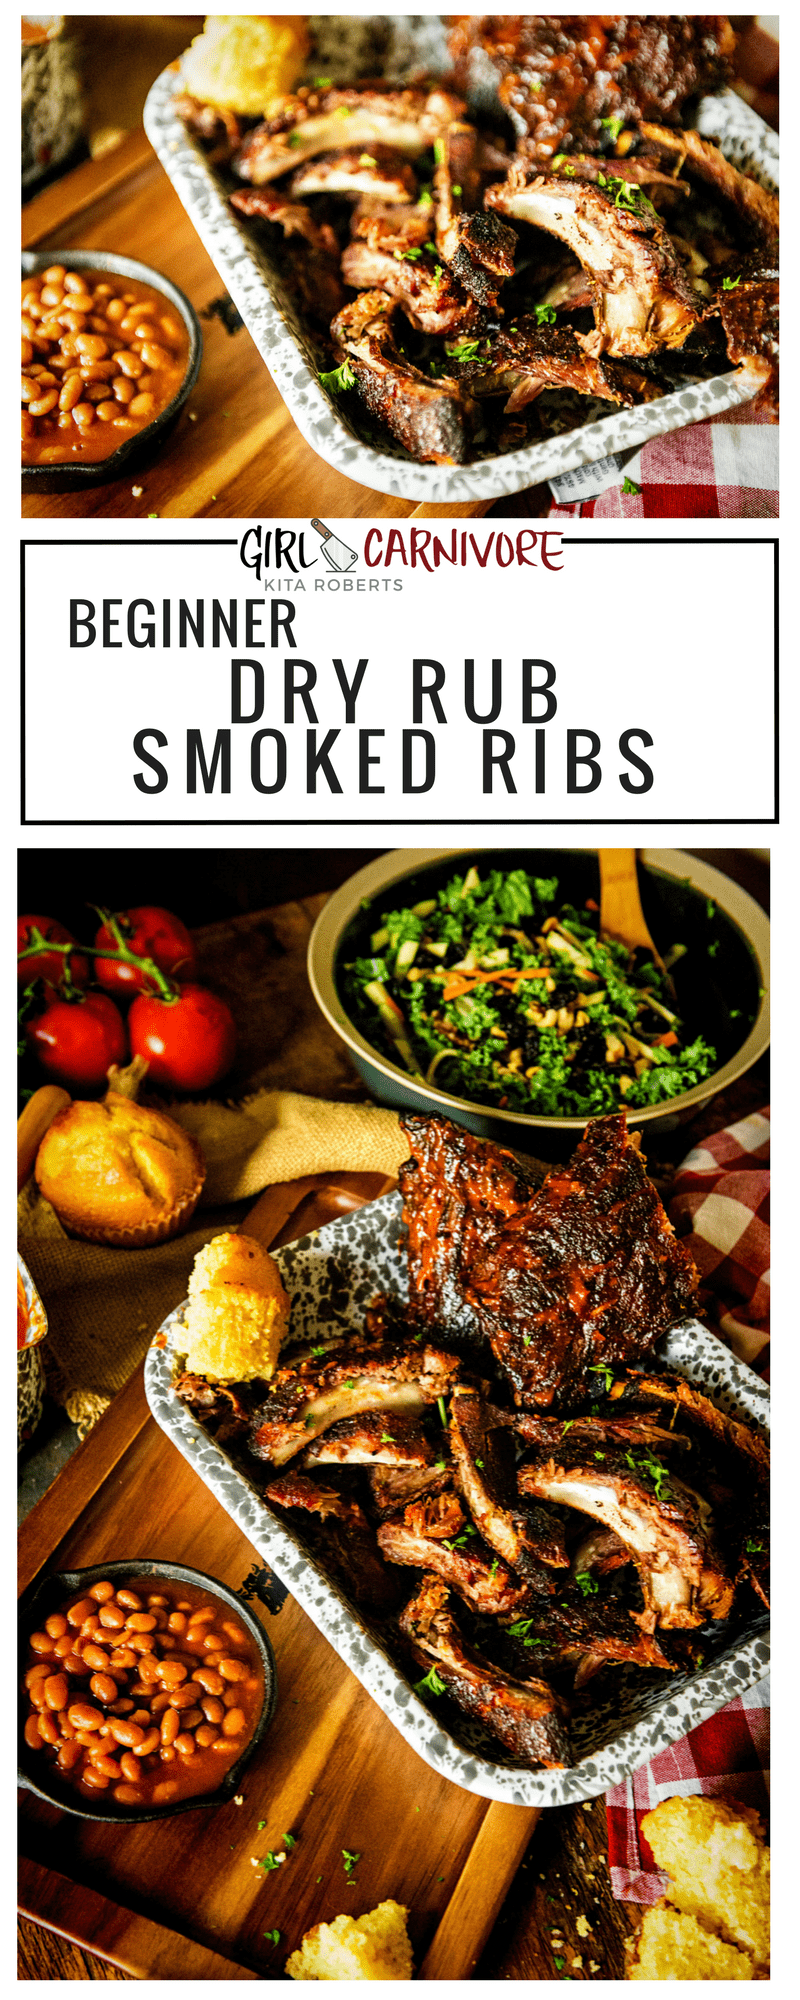 Beginner Dry Rub Smoked Ribs | Easy smoked ribs perfect for the first time griller, but delicious enough for the seasoned pro. | Recipe at GirlCarnivore.com